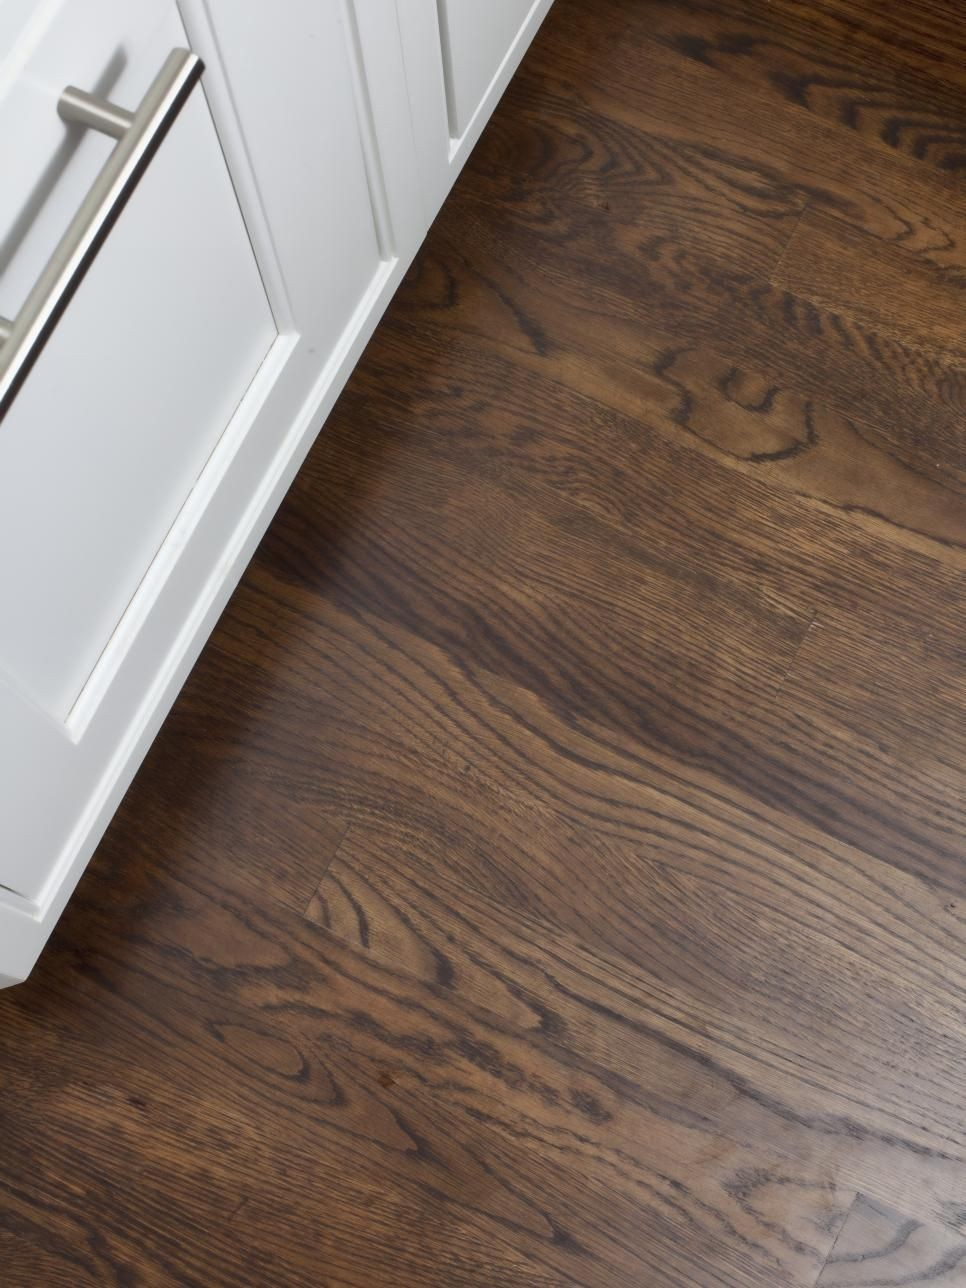 Change Hardwood Floor Color